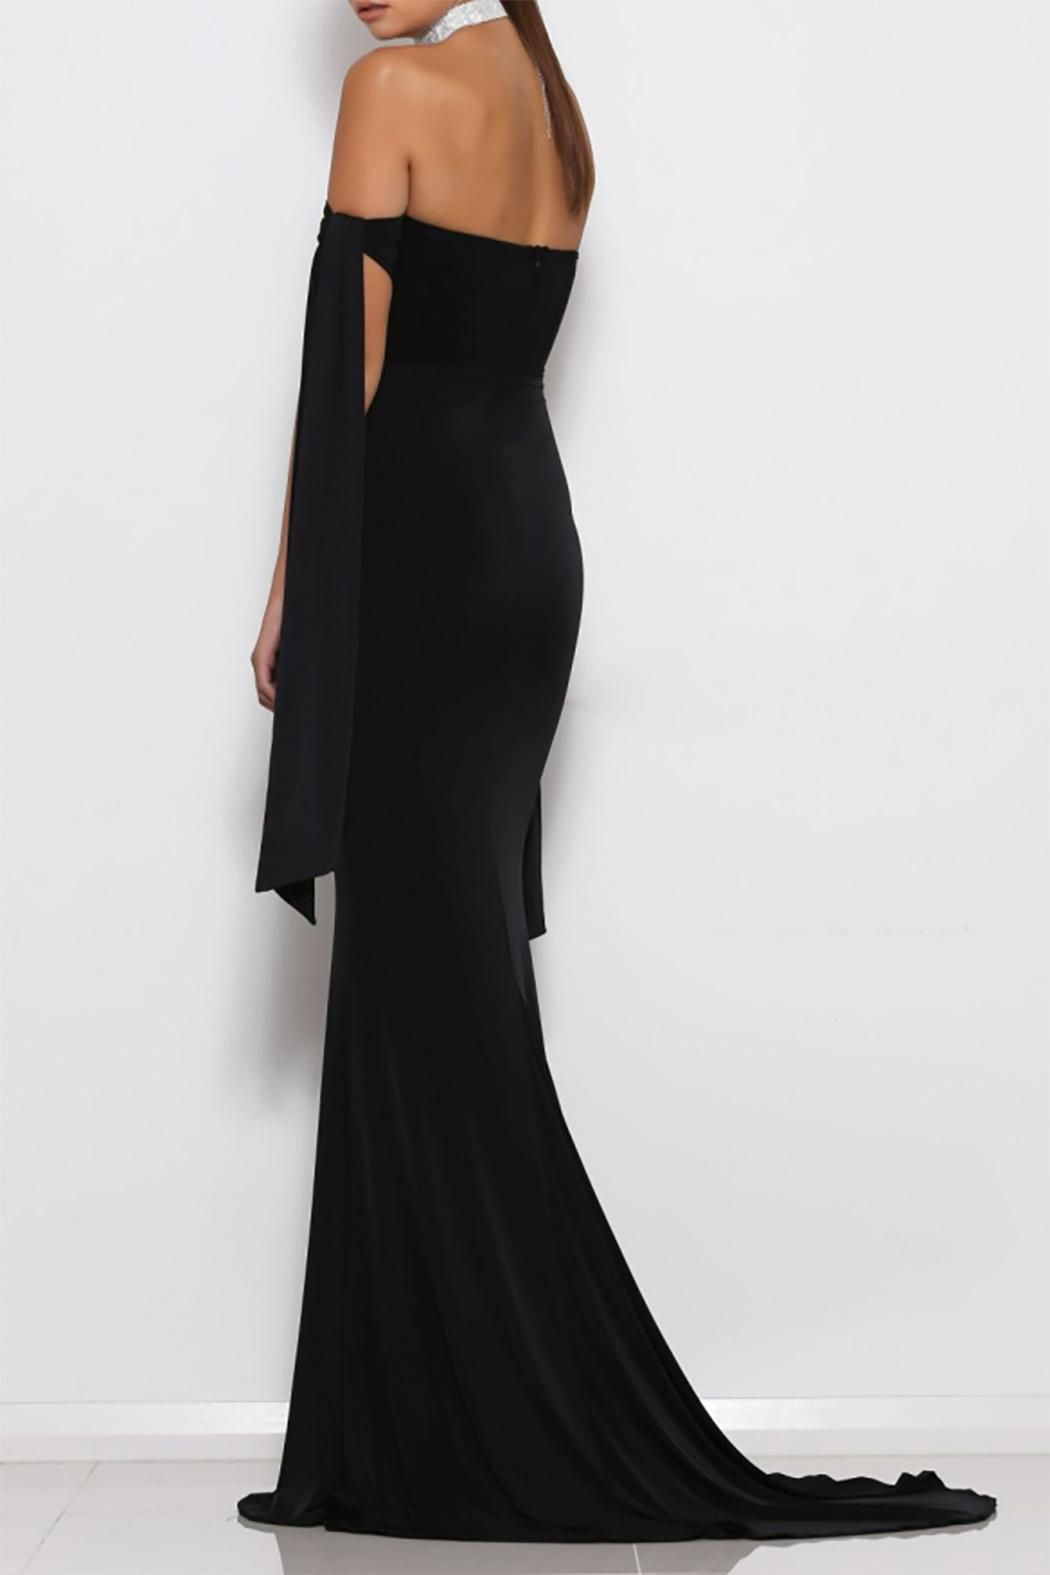 ABYSS BY ABBY Abyss Lovisa Dress